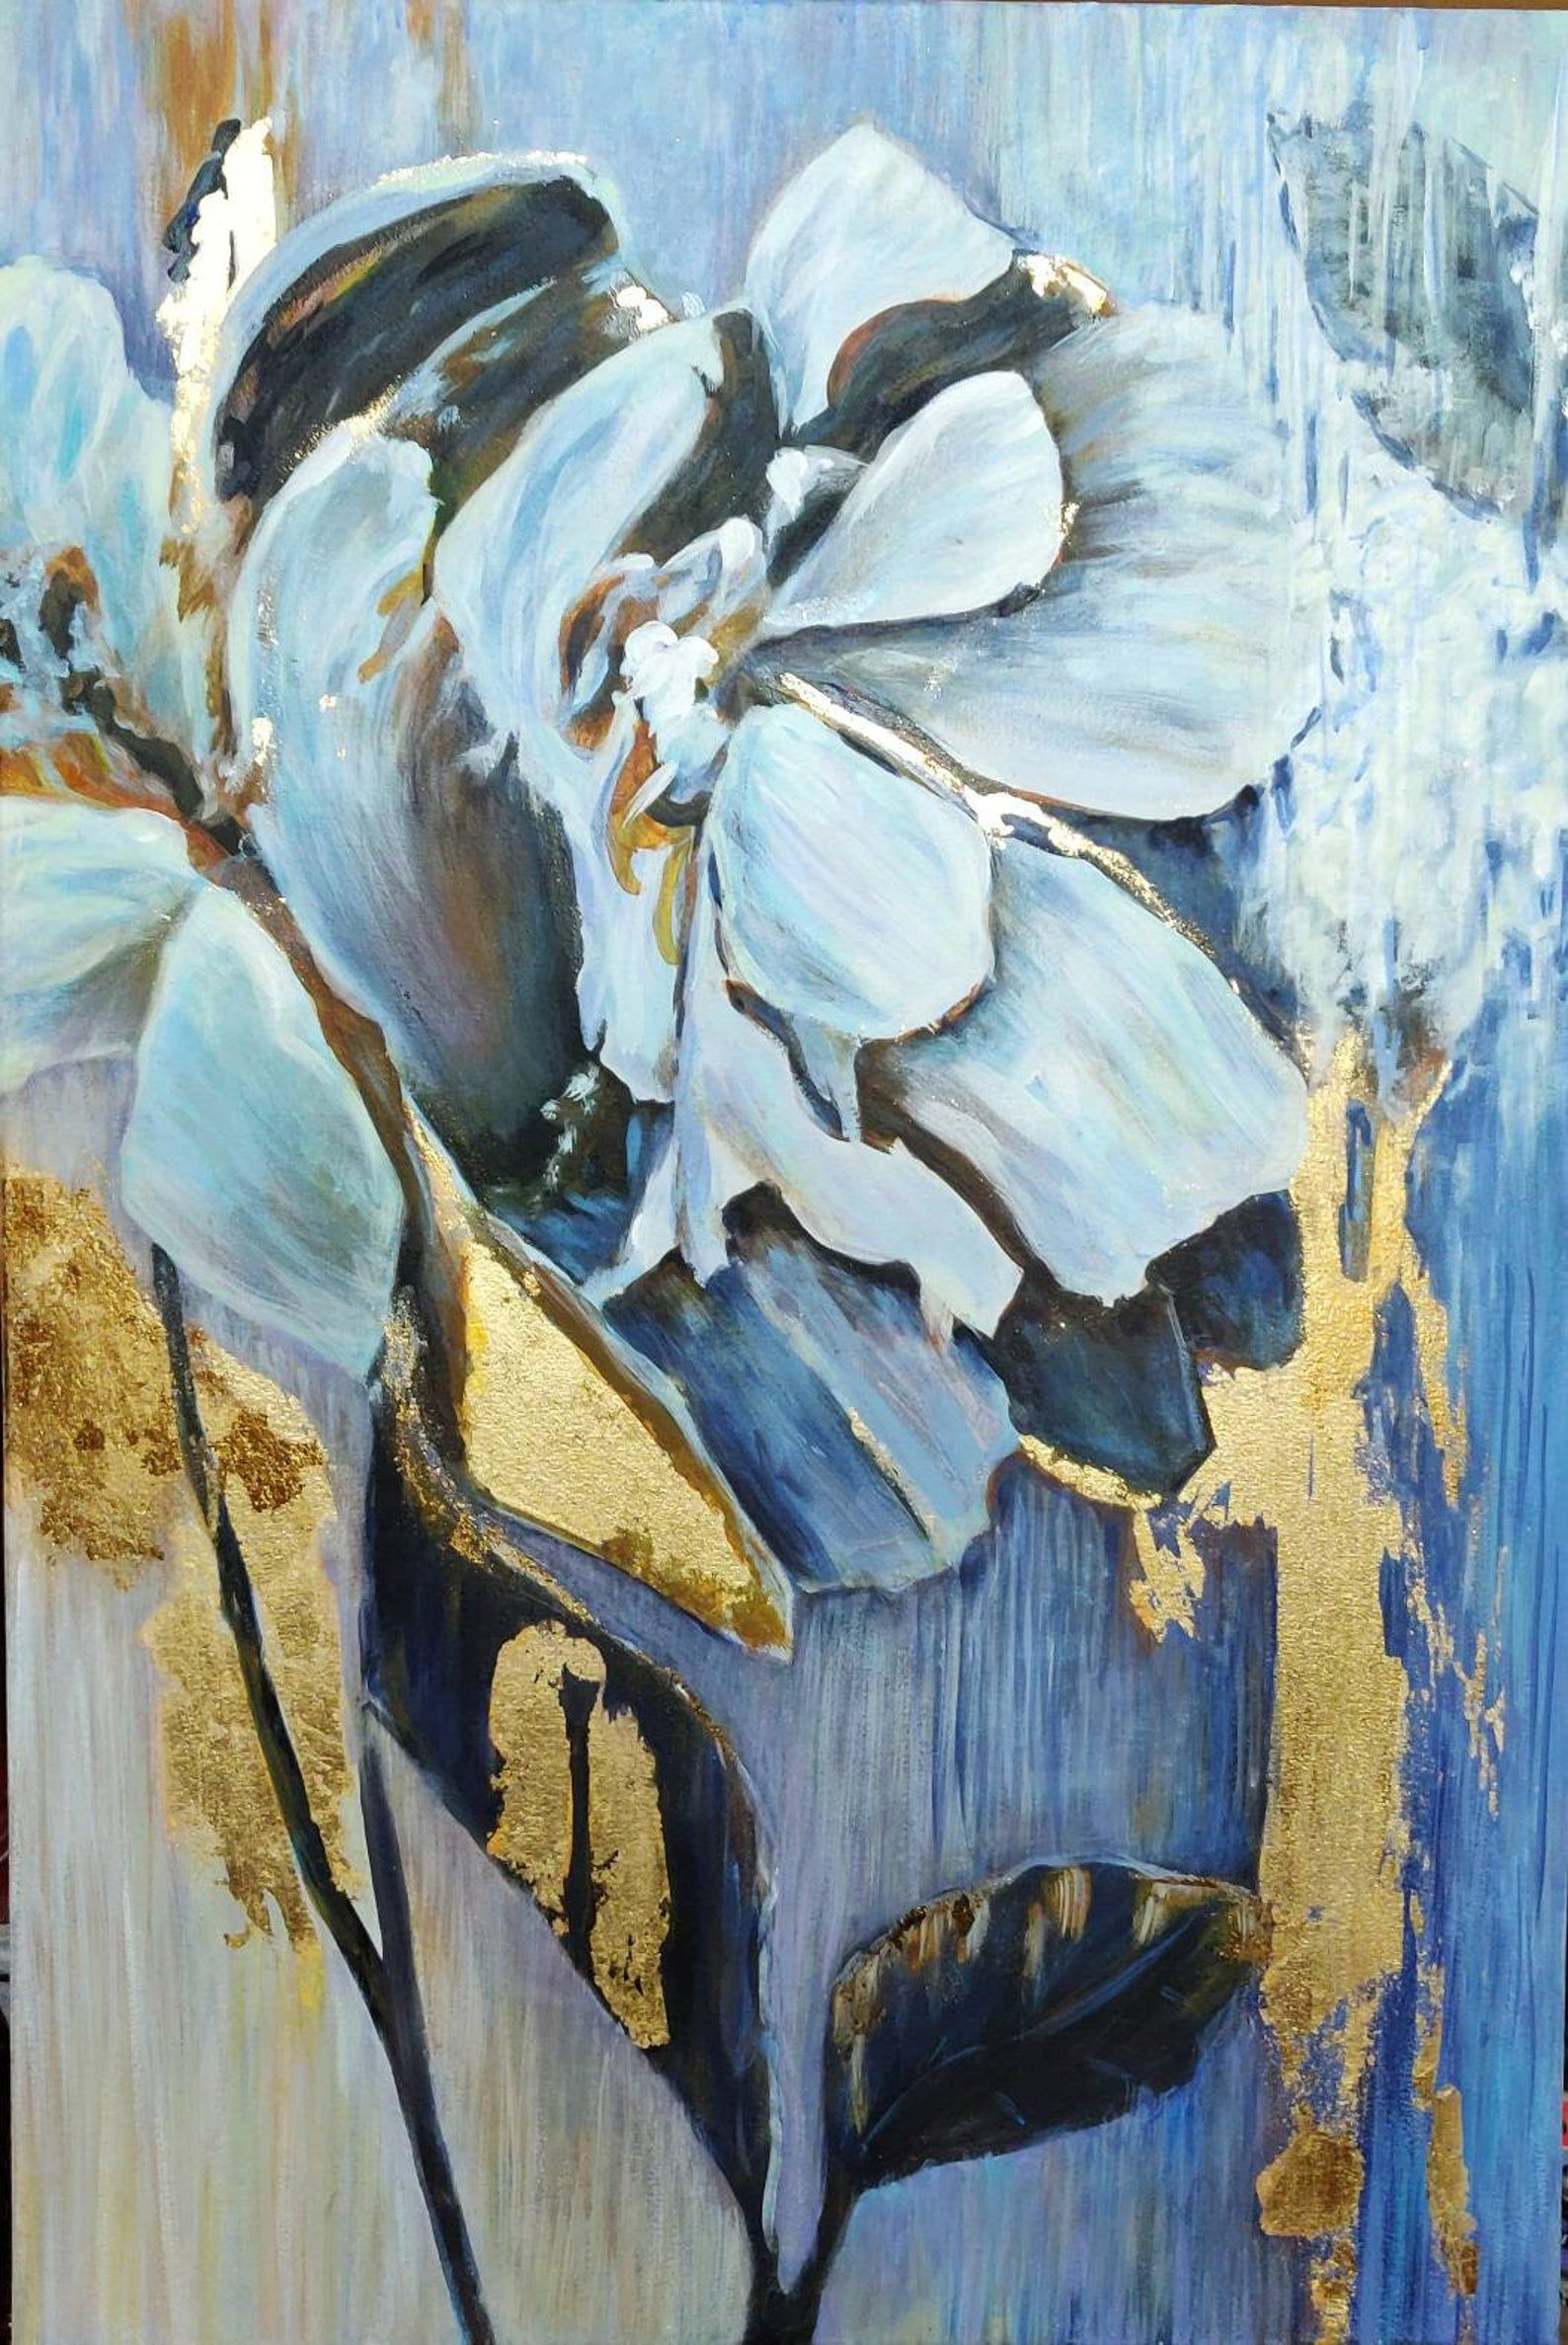 texture painting acrylic painting 3D art  wall decoration painting garden with flowers painting white flowers blue painting with gold